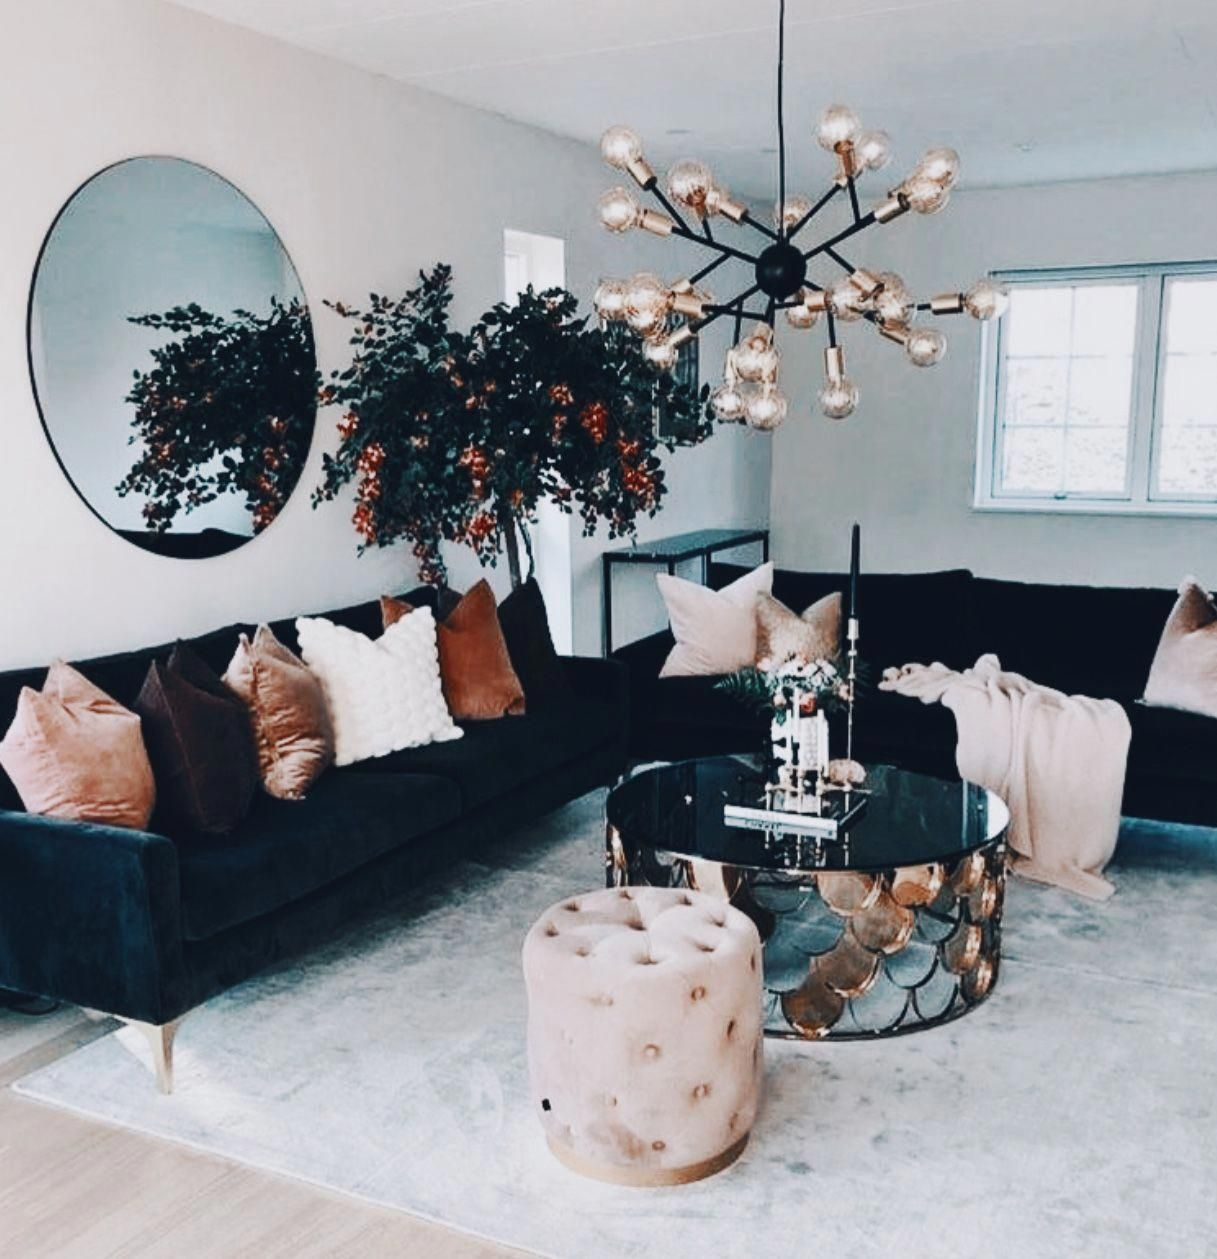 Top Ideas For The Living Room Decor Kamer Decoratie Woonkamer